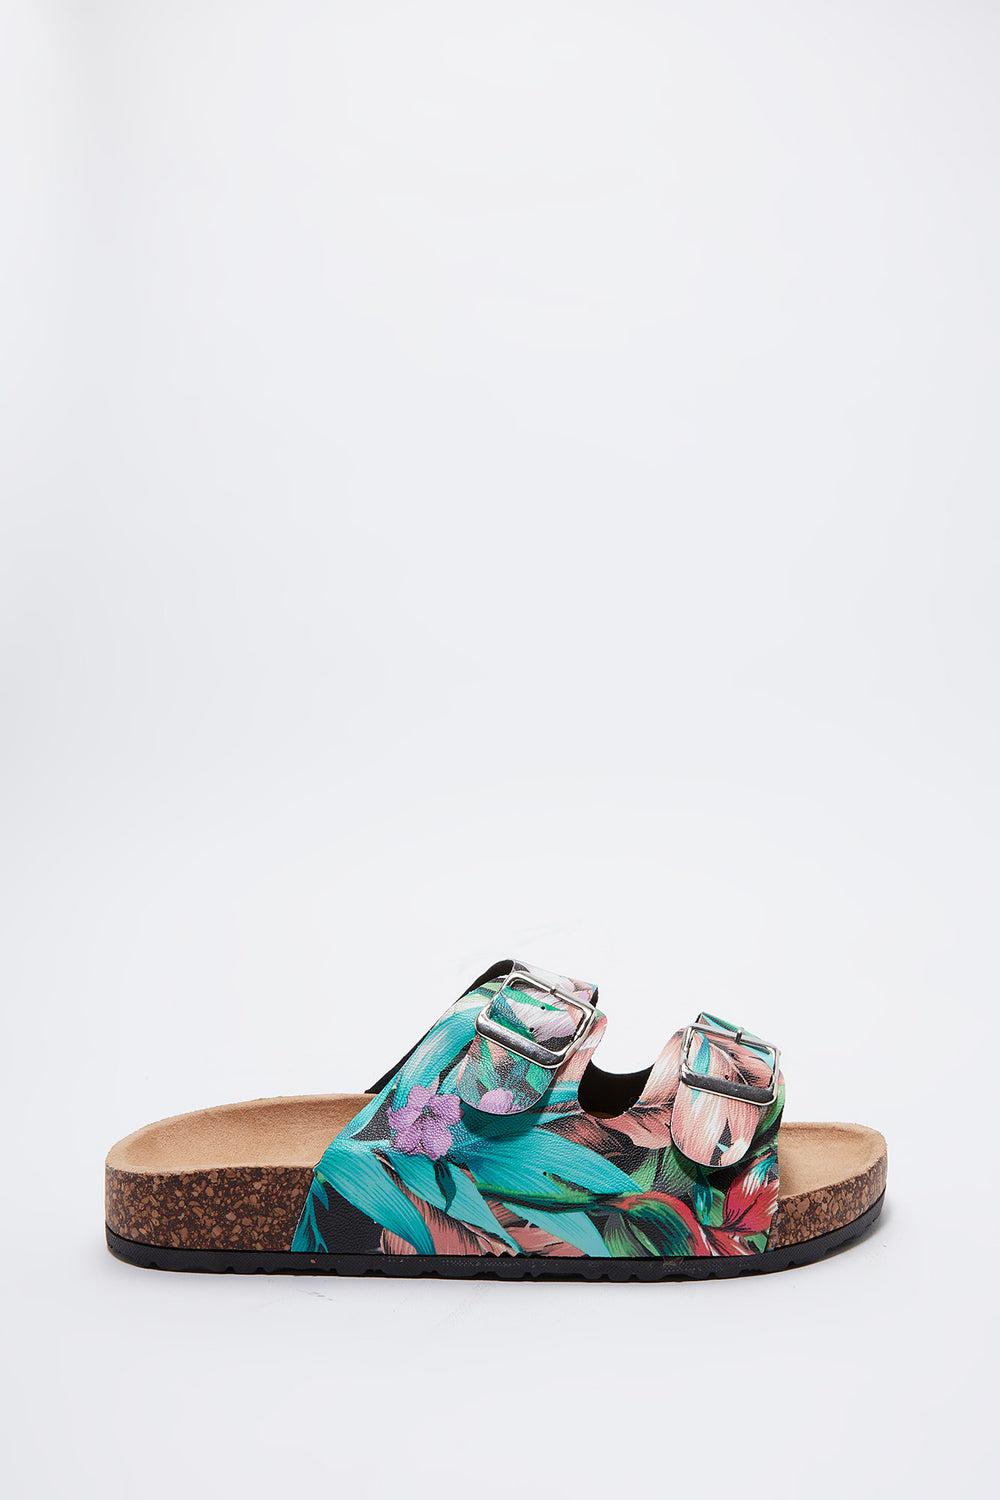 Floral Dual Buckle Slide Multi